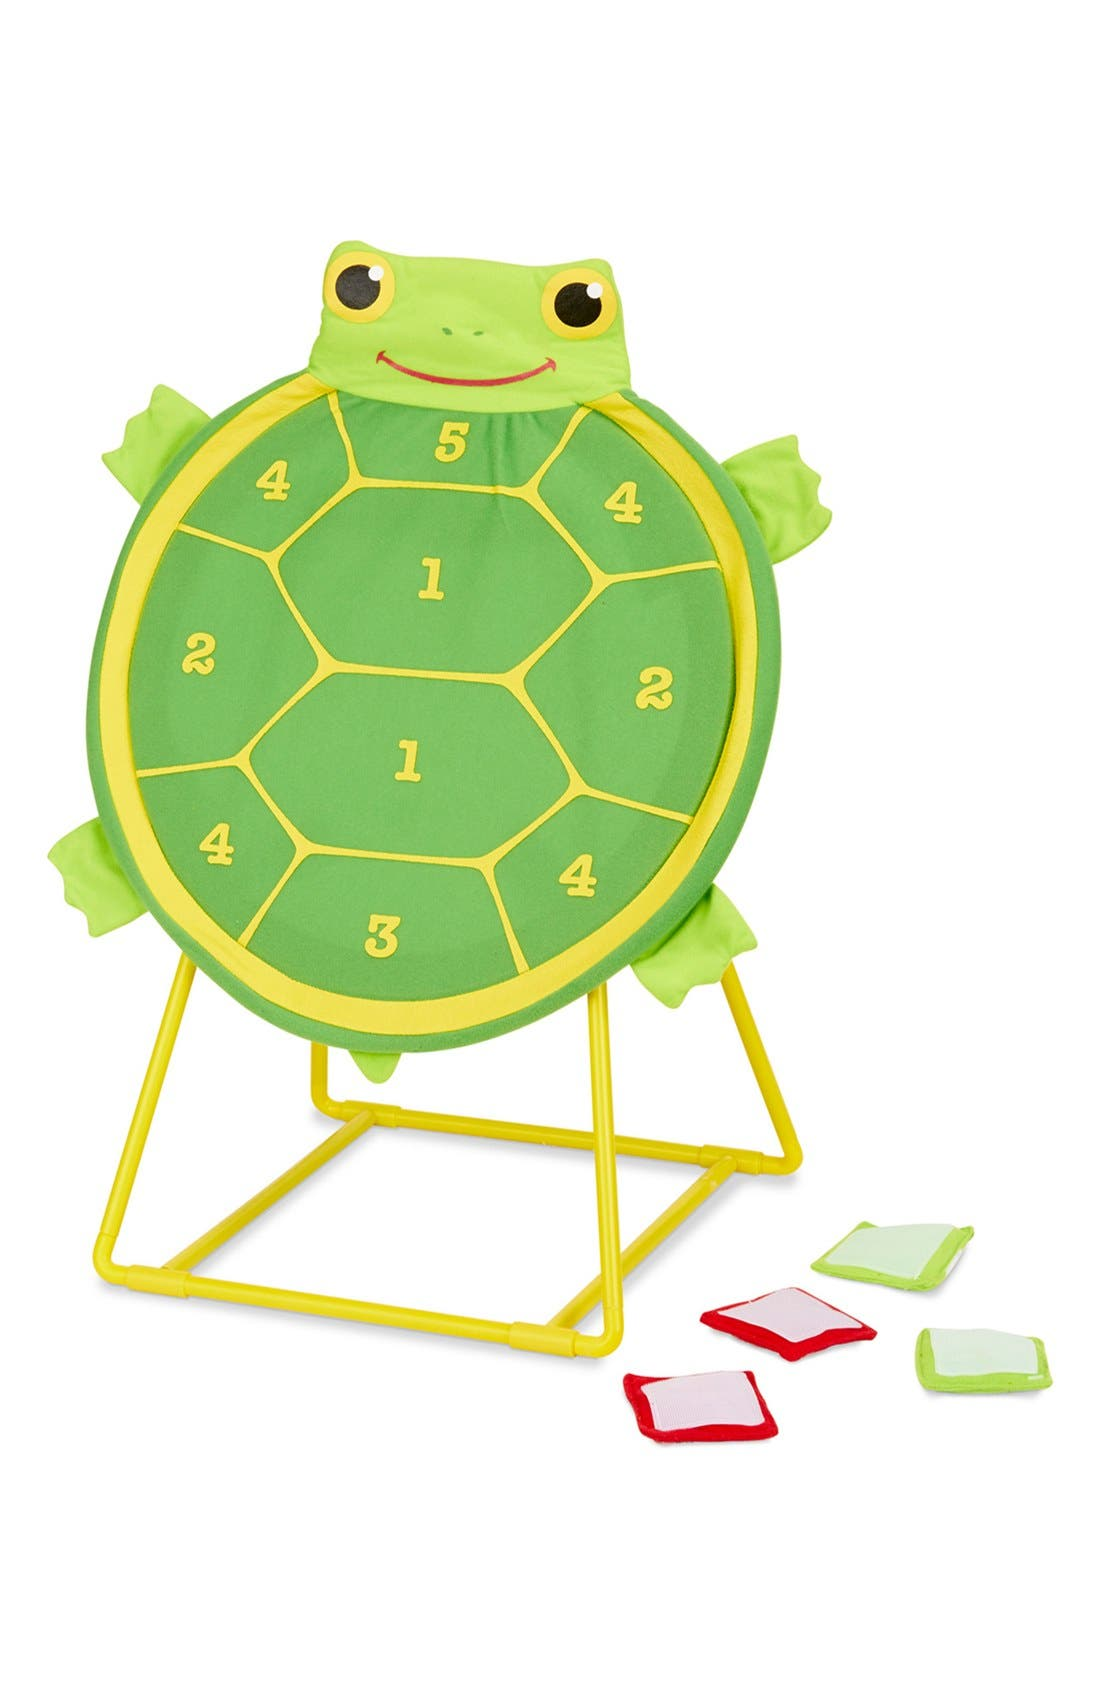 'Tootle Turtle' Target Game,                             Alternate thumbnail 2, color,                             300